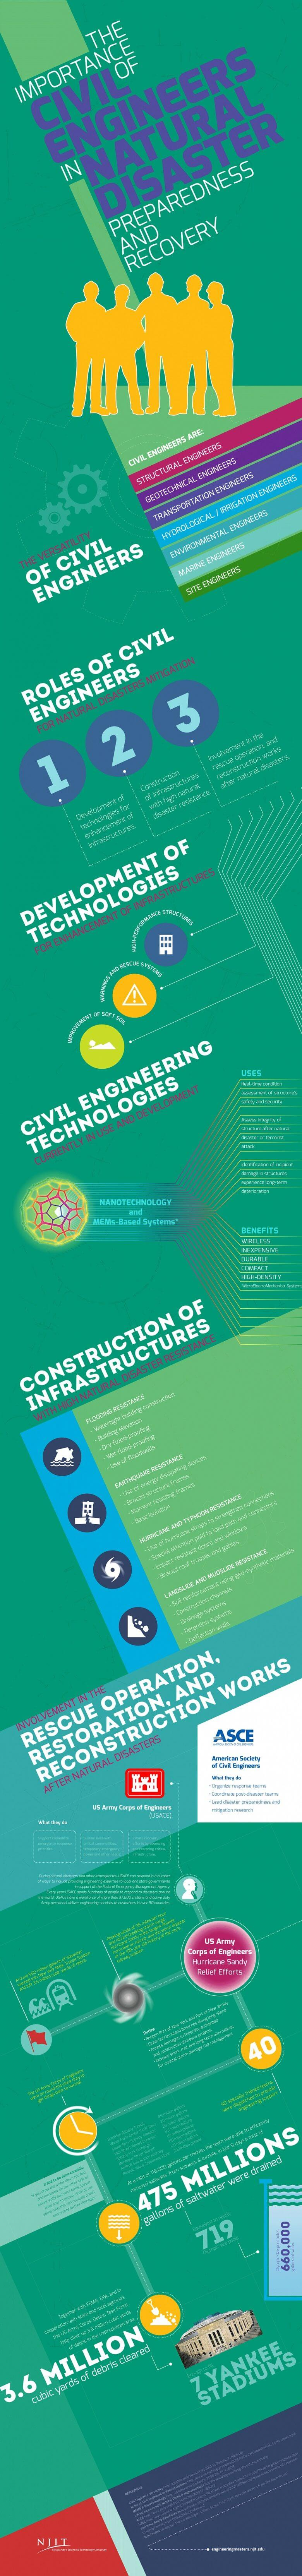 Civil Engineering in Natural Disasters Infographic